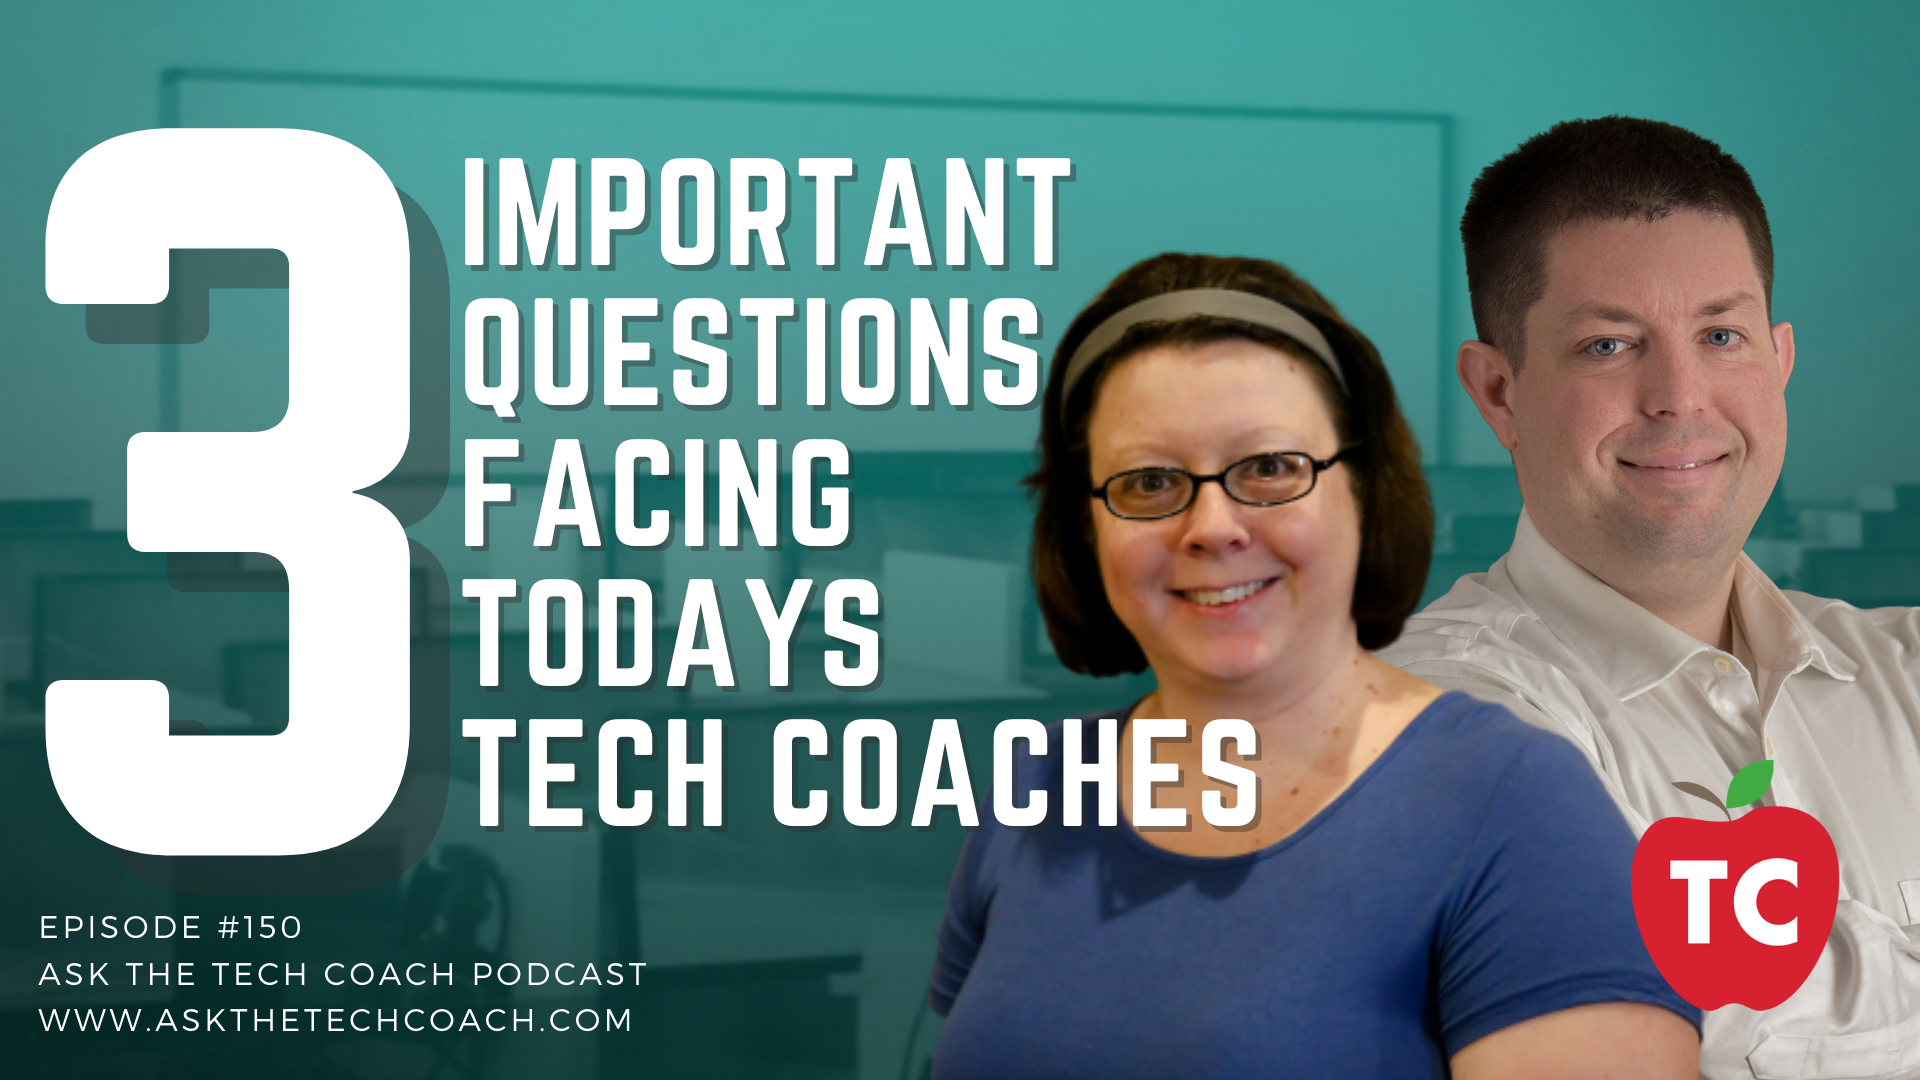 3 Important Questions for Tech Coaches